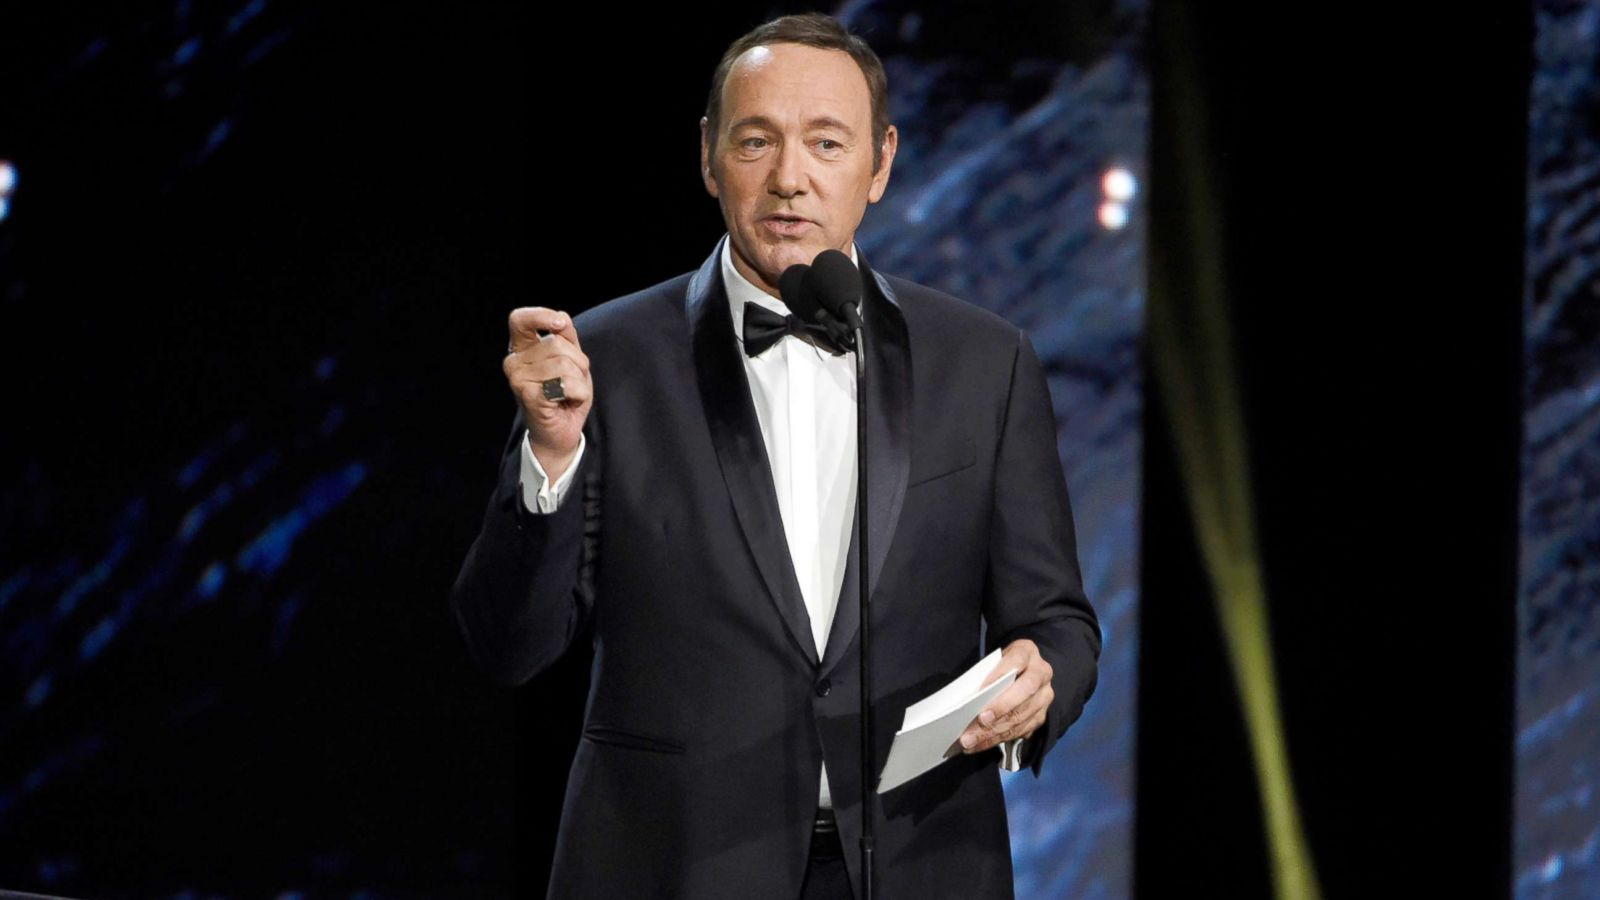 The Rise And Fall Of Kevin Spacey A Timeline Of Sexual Assault Images, Photos, Reviews